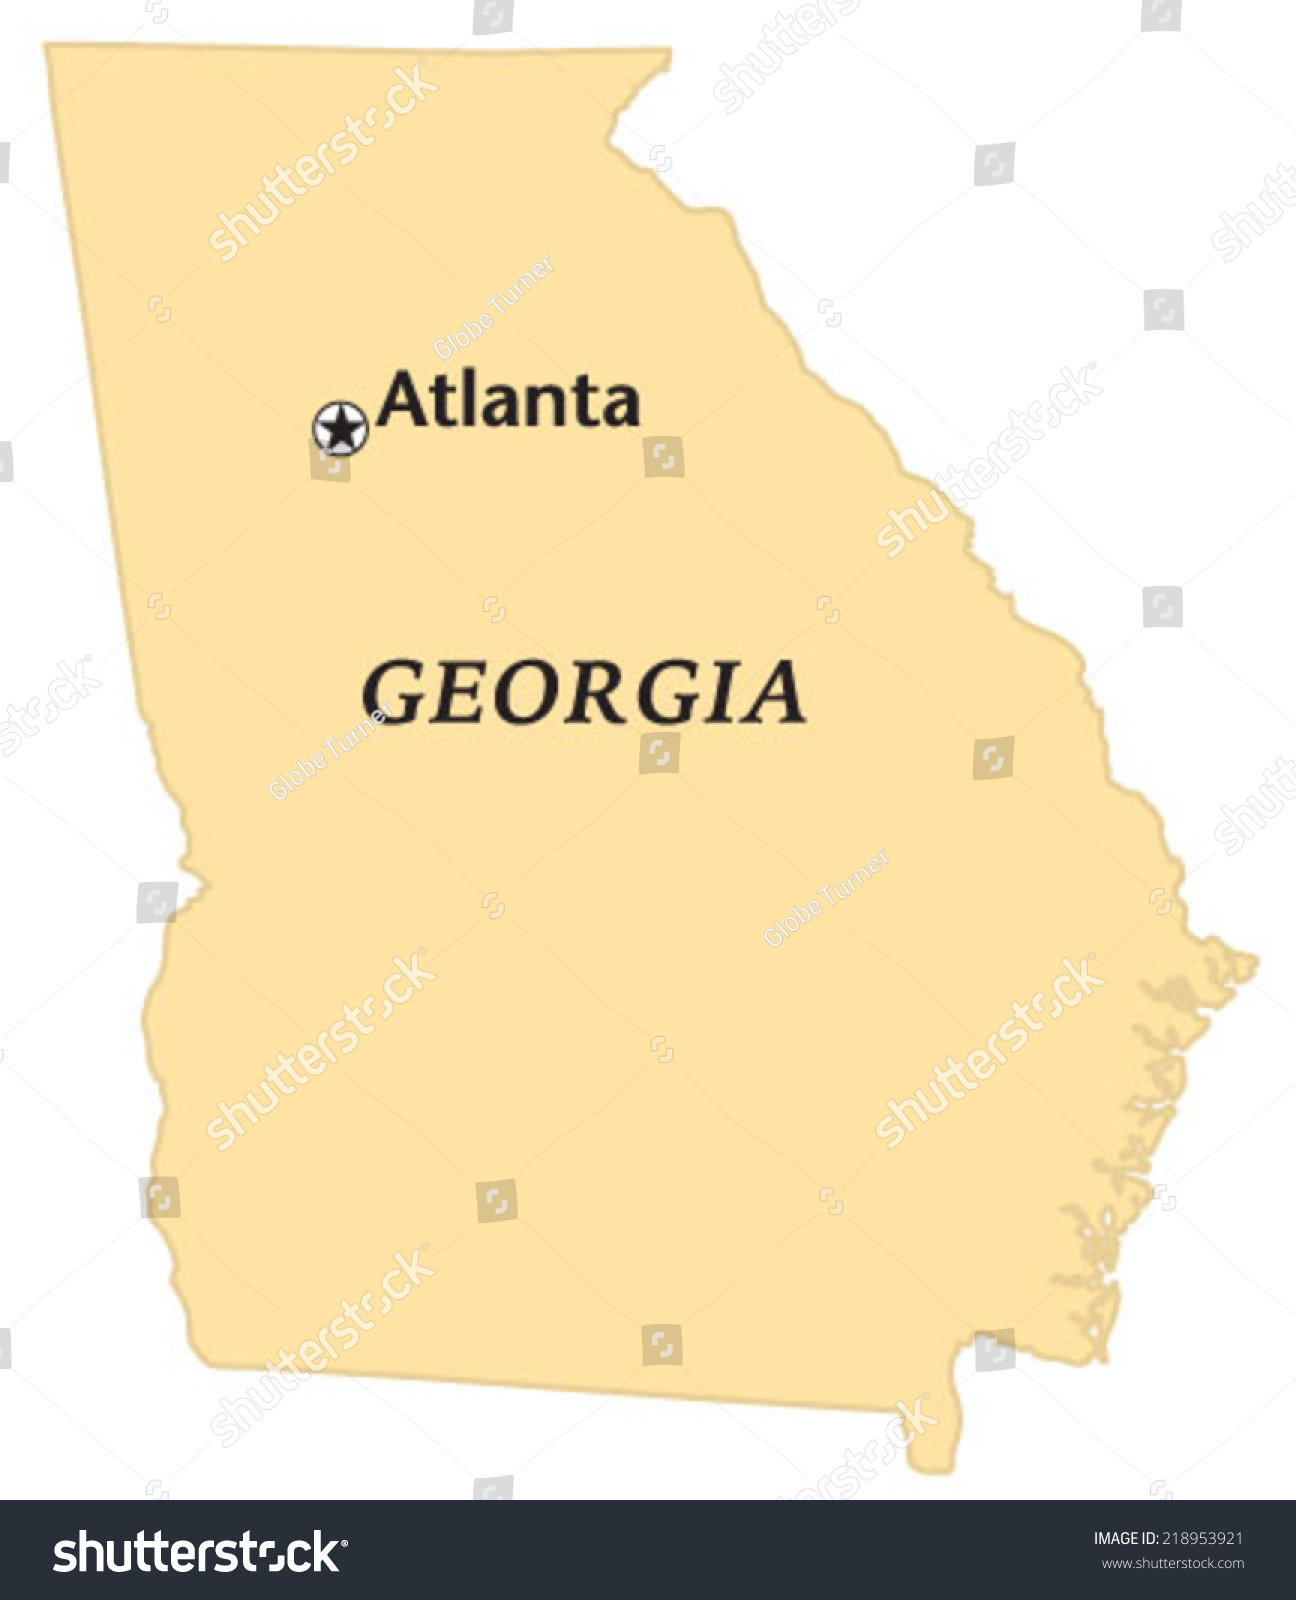 Georgia Map Map Of Georgia USA Detailed GA Map Home Security In - Map of georgia usa